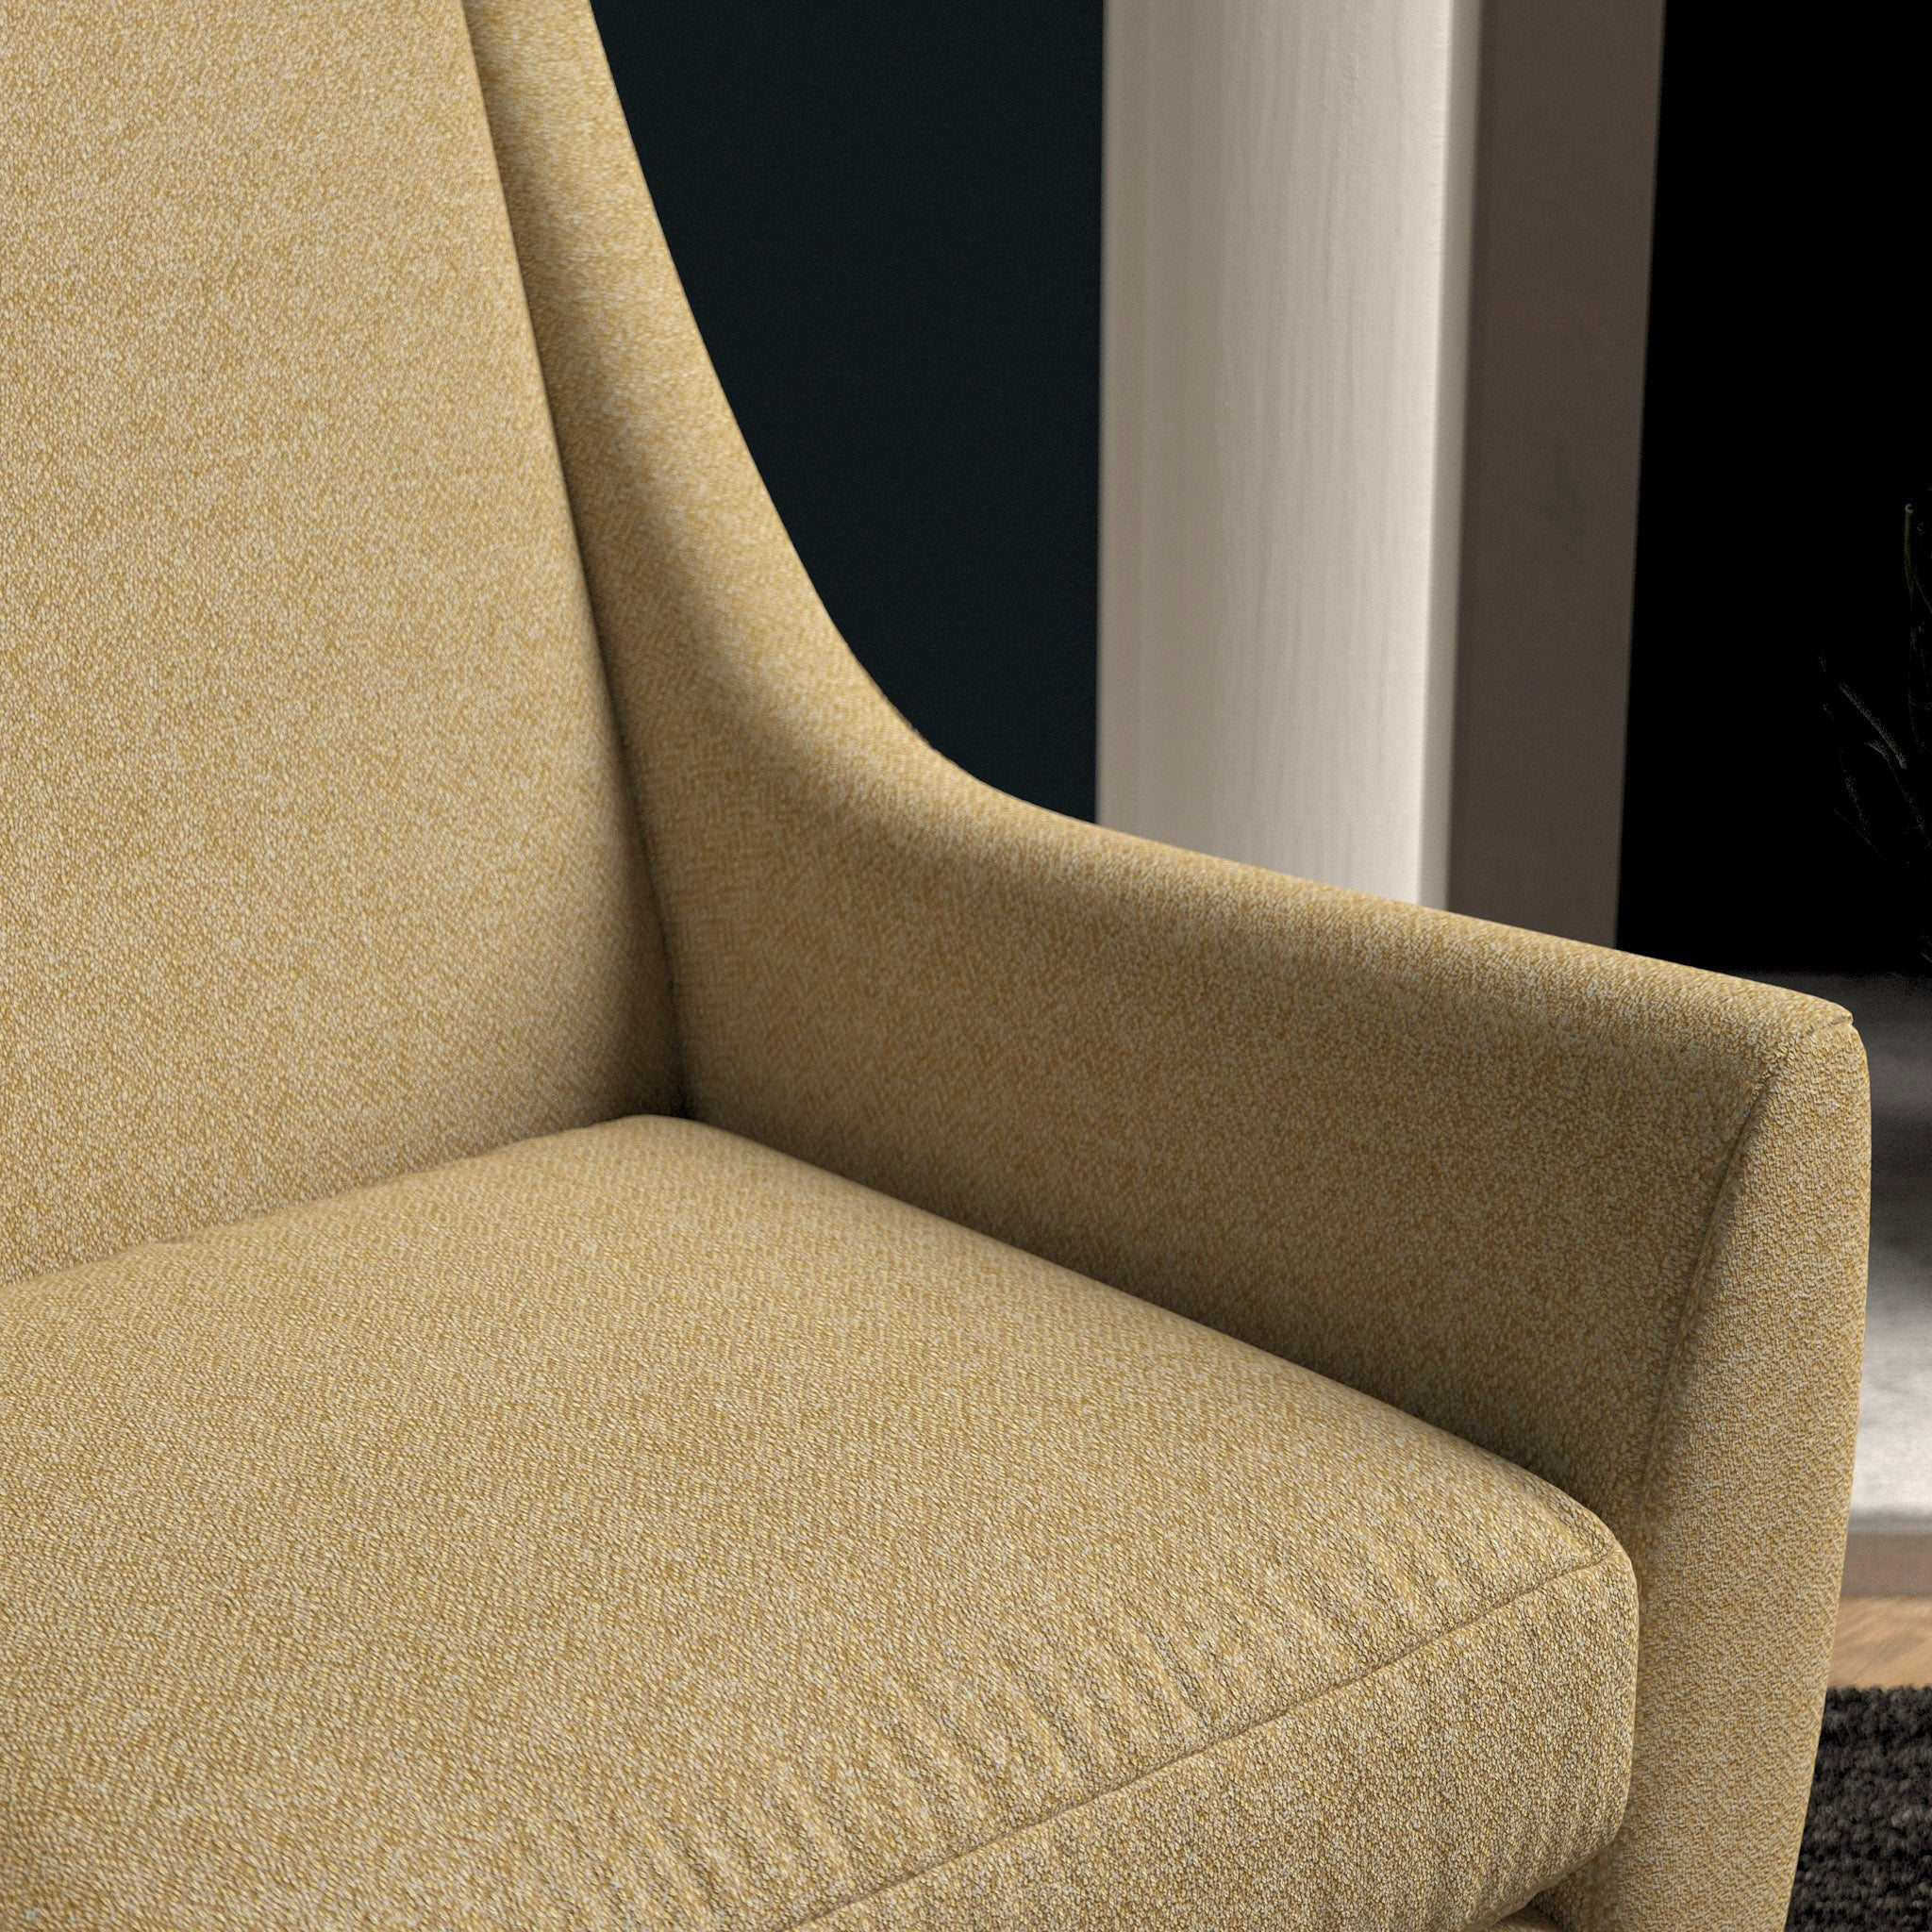 Chair upholstered in a light yellow herringbone wool weave upholstery fabric